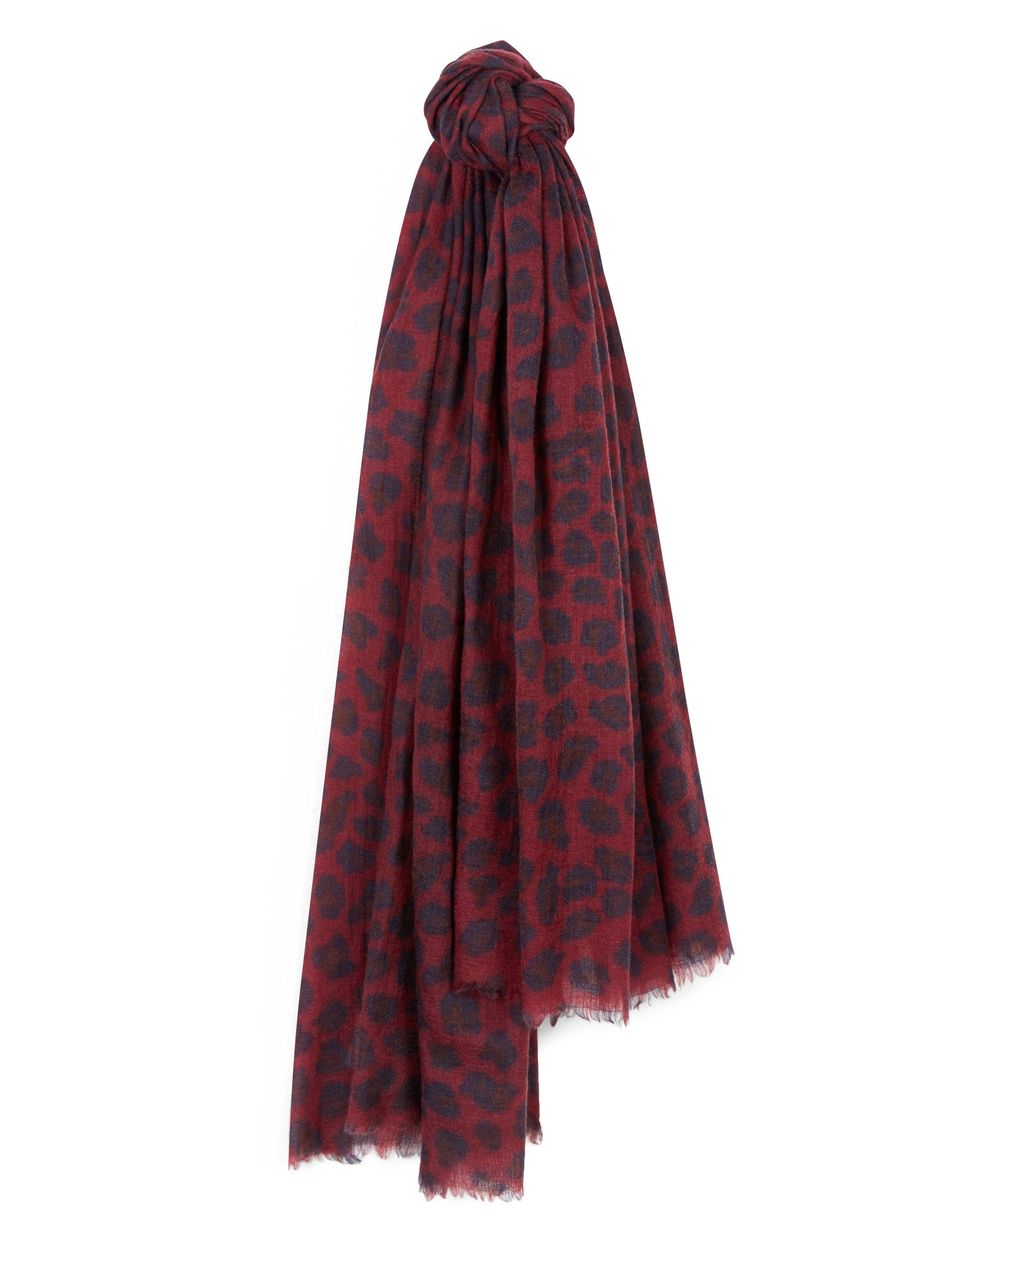 Wool Silk Leopard Print Scarf, Red - predominant colour: burgundy; secondary colour: navy; occasions: casual; type of pattern: heavy; style: regular; size: large; material: silk; pattern: animal print; multicoloured: multicoloured; season: a/w 2016; wardrobe: highlight